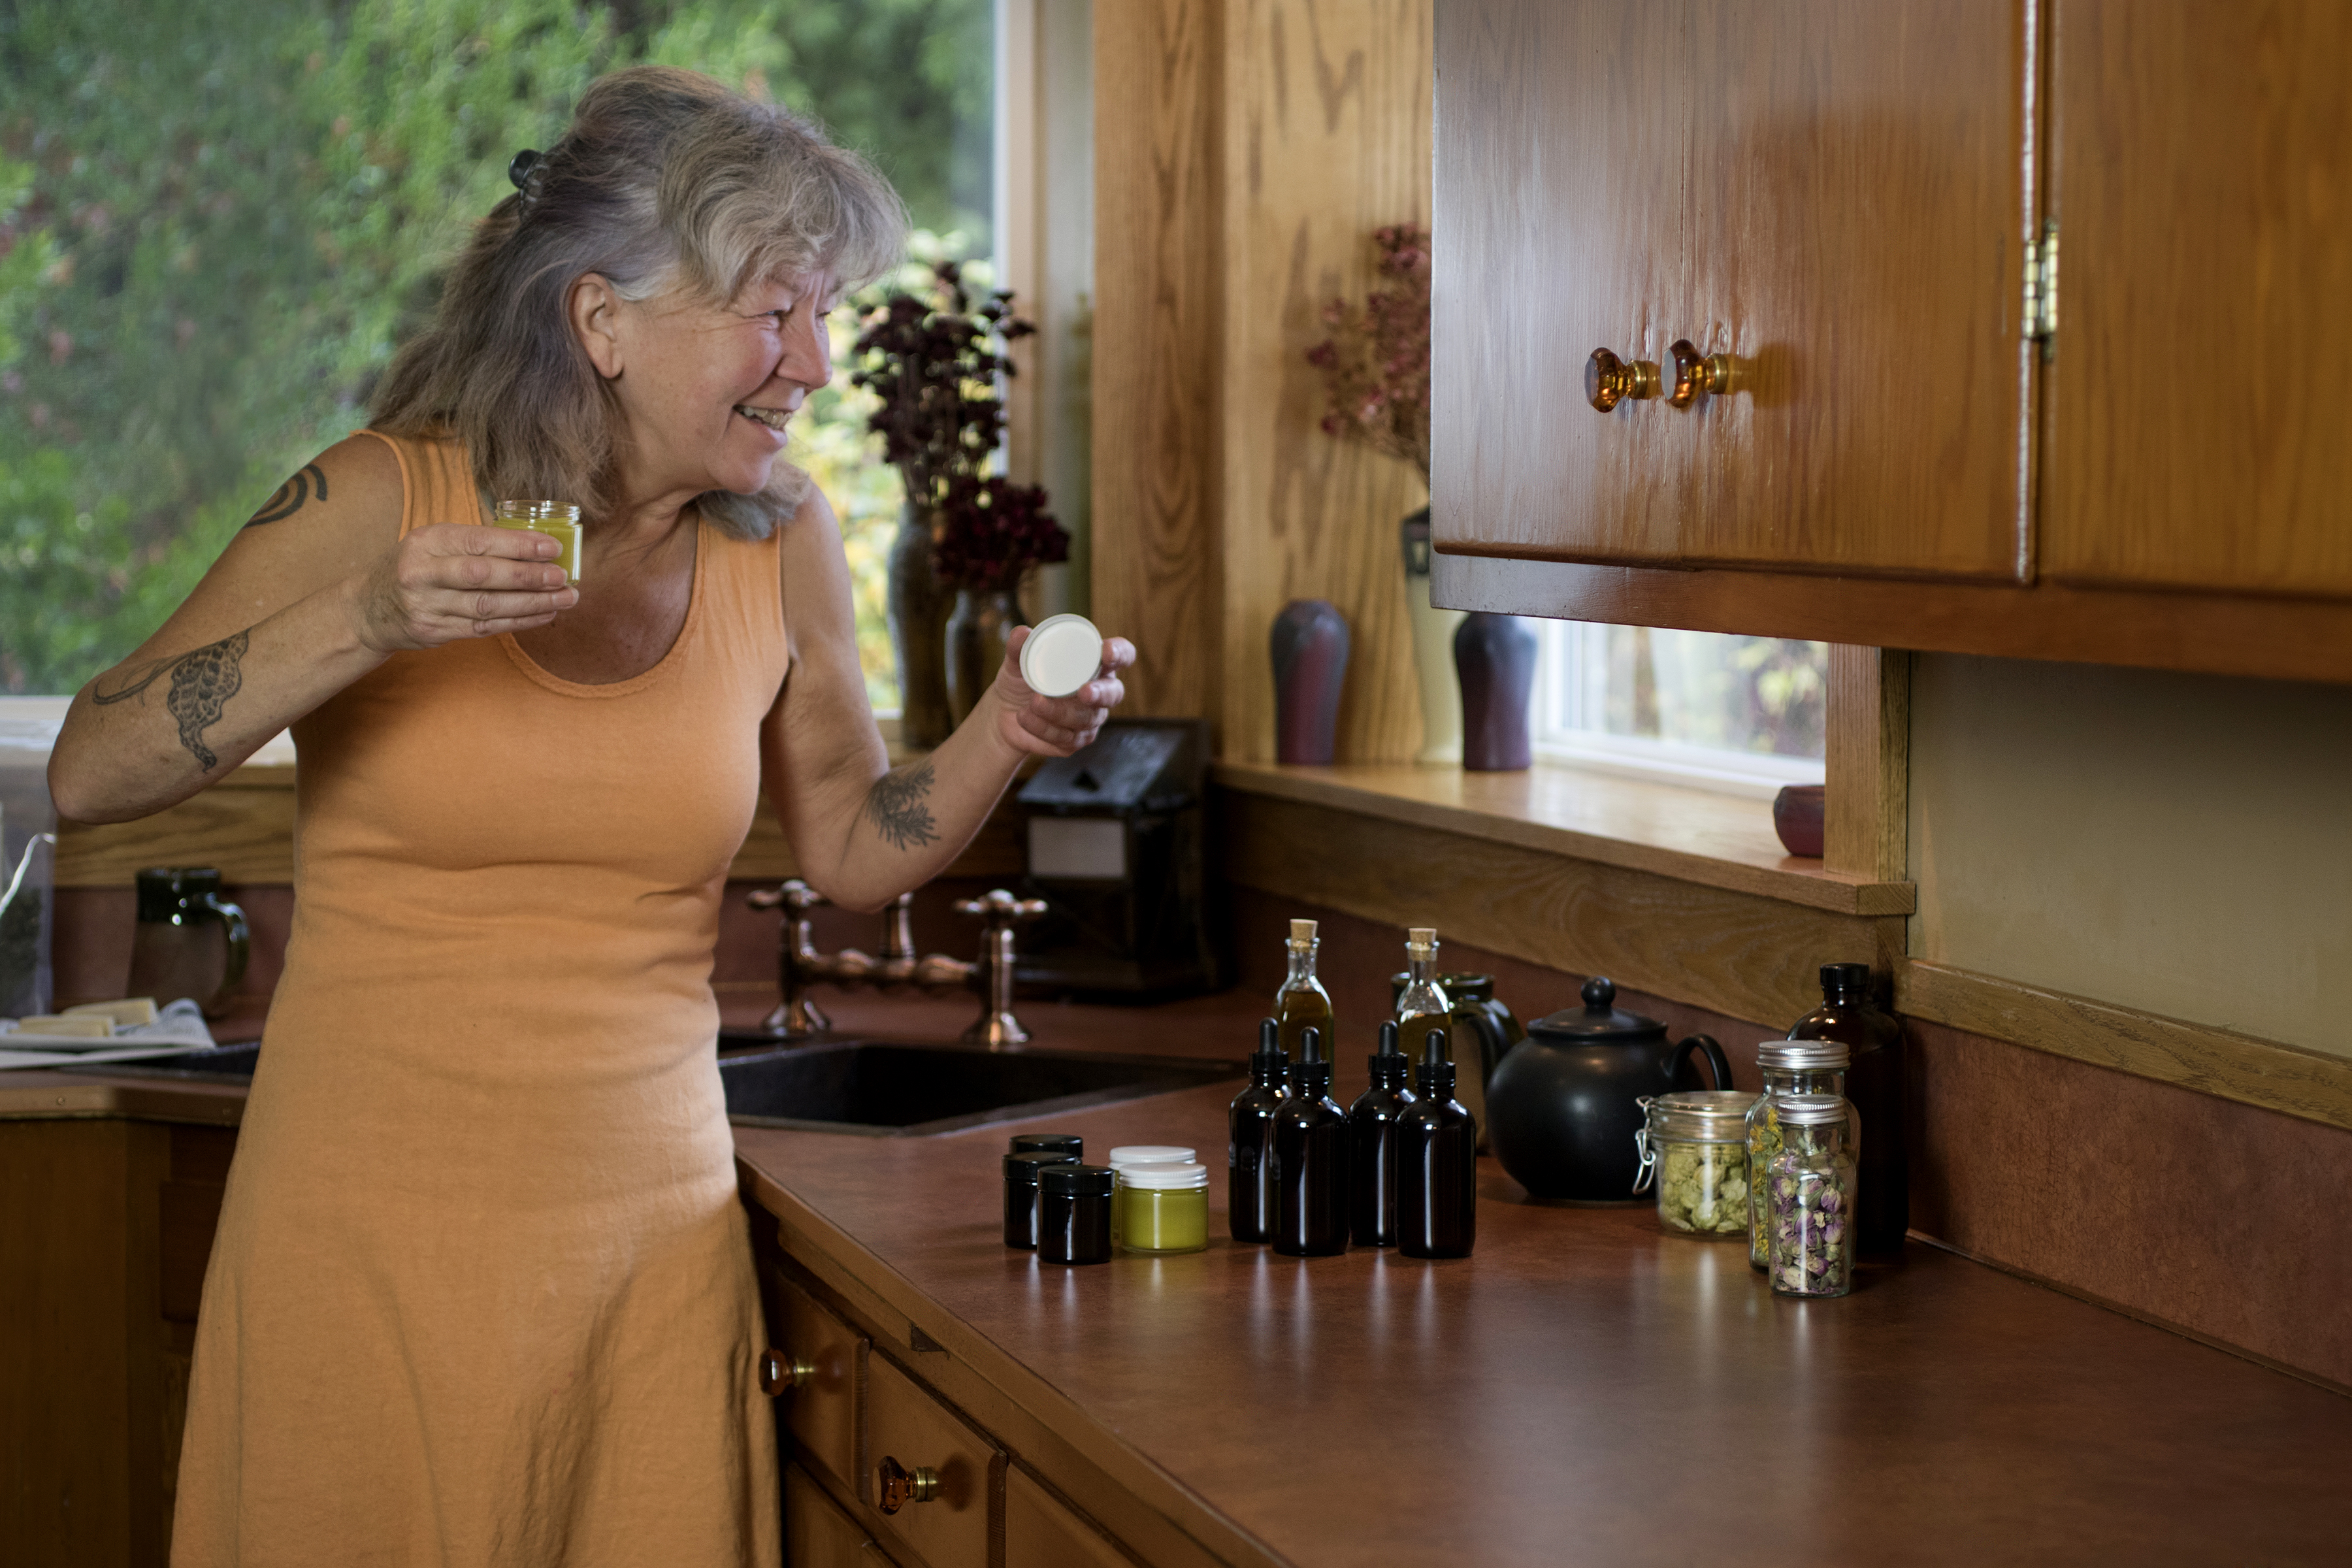 Owner Julie Bailey and her small collection of homemade herbal salves and oils for testing in her home kitchen.